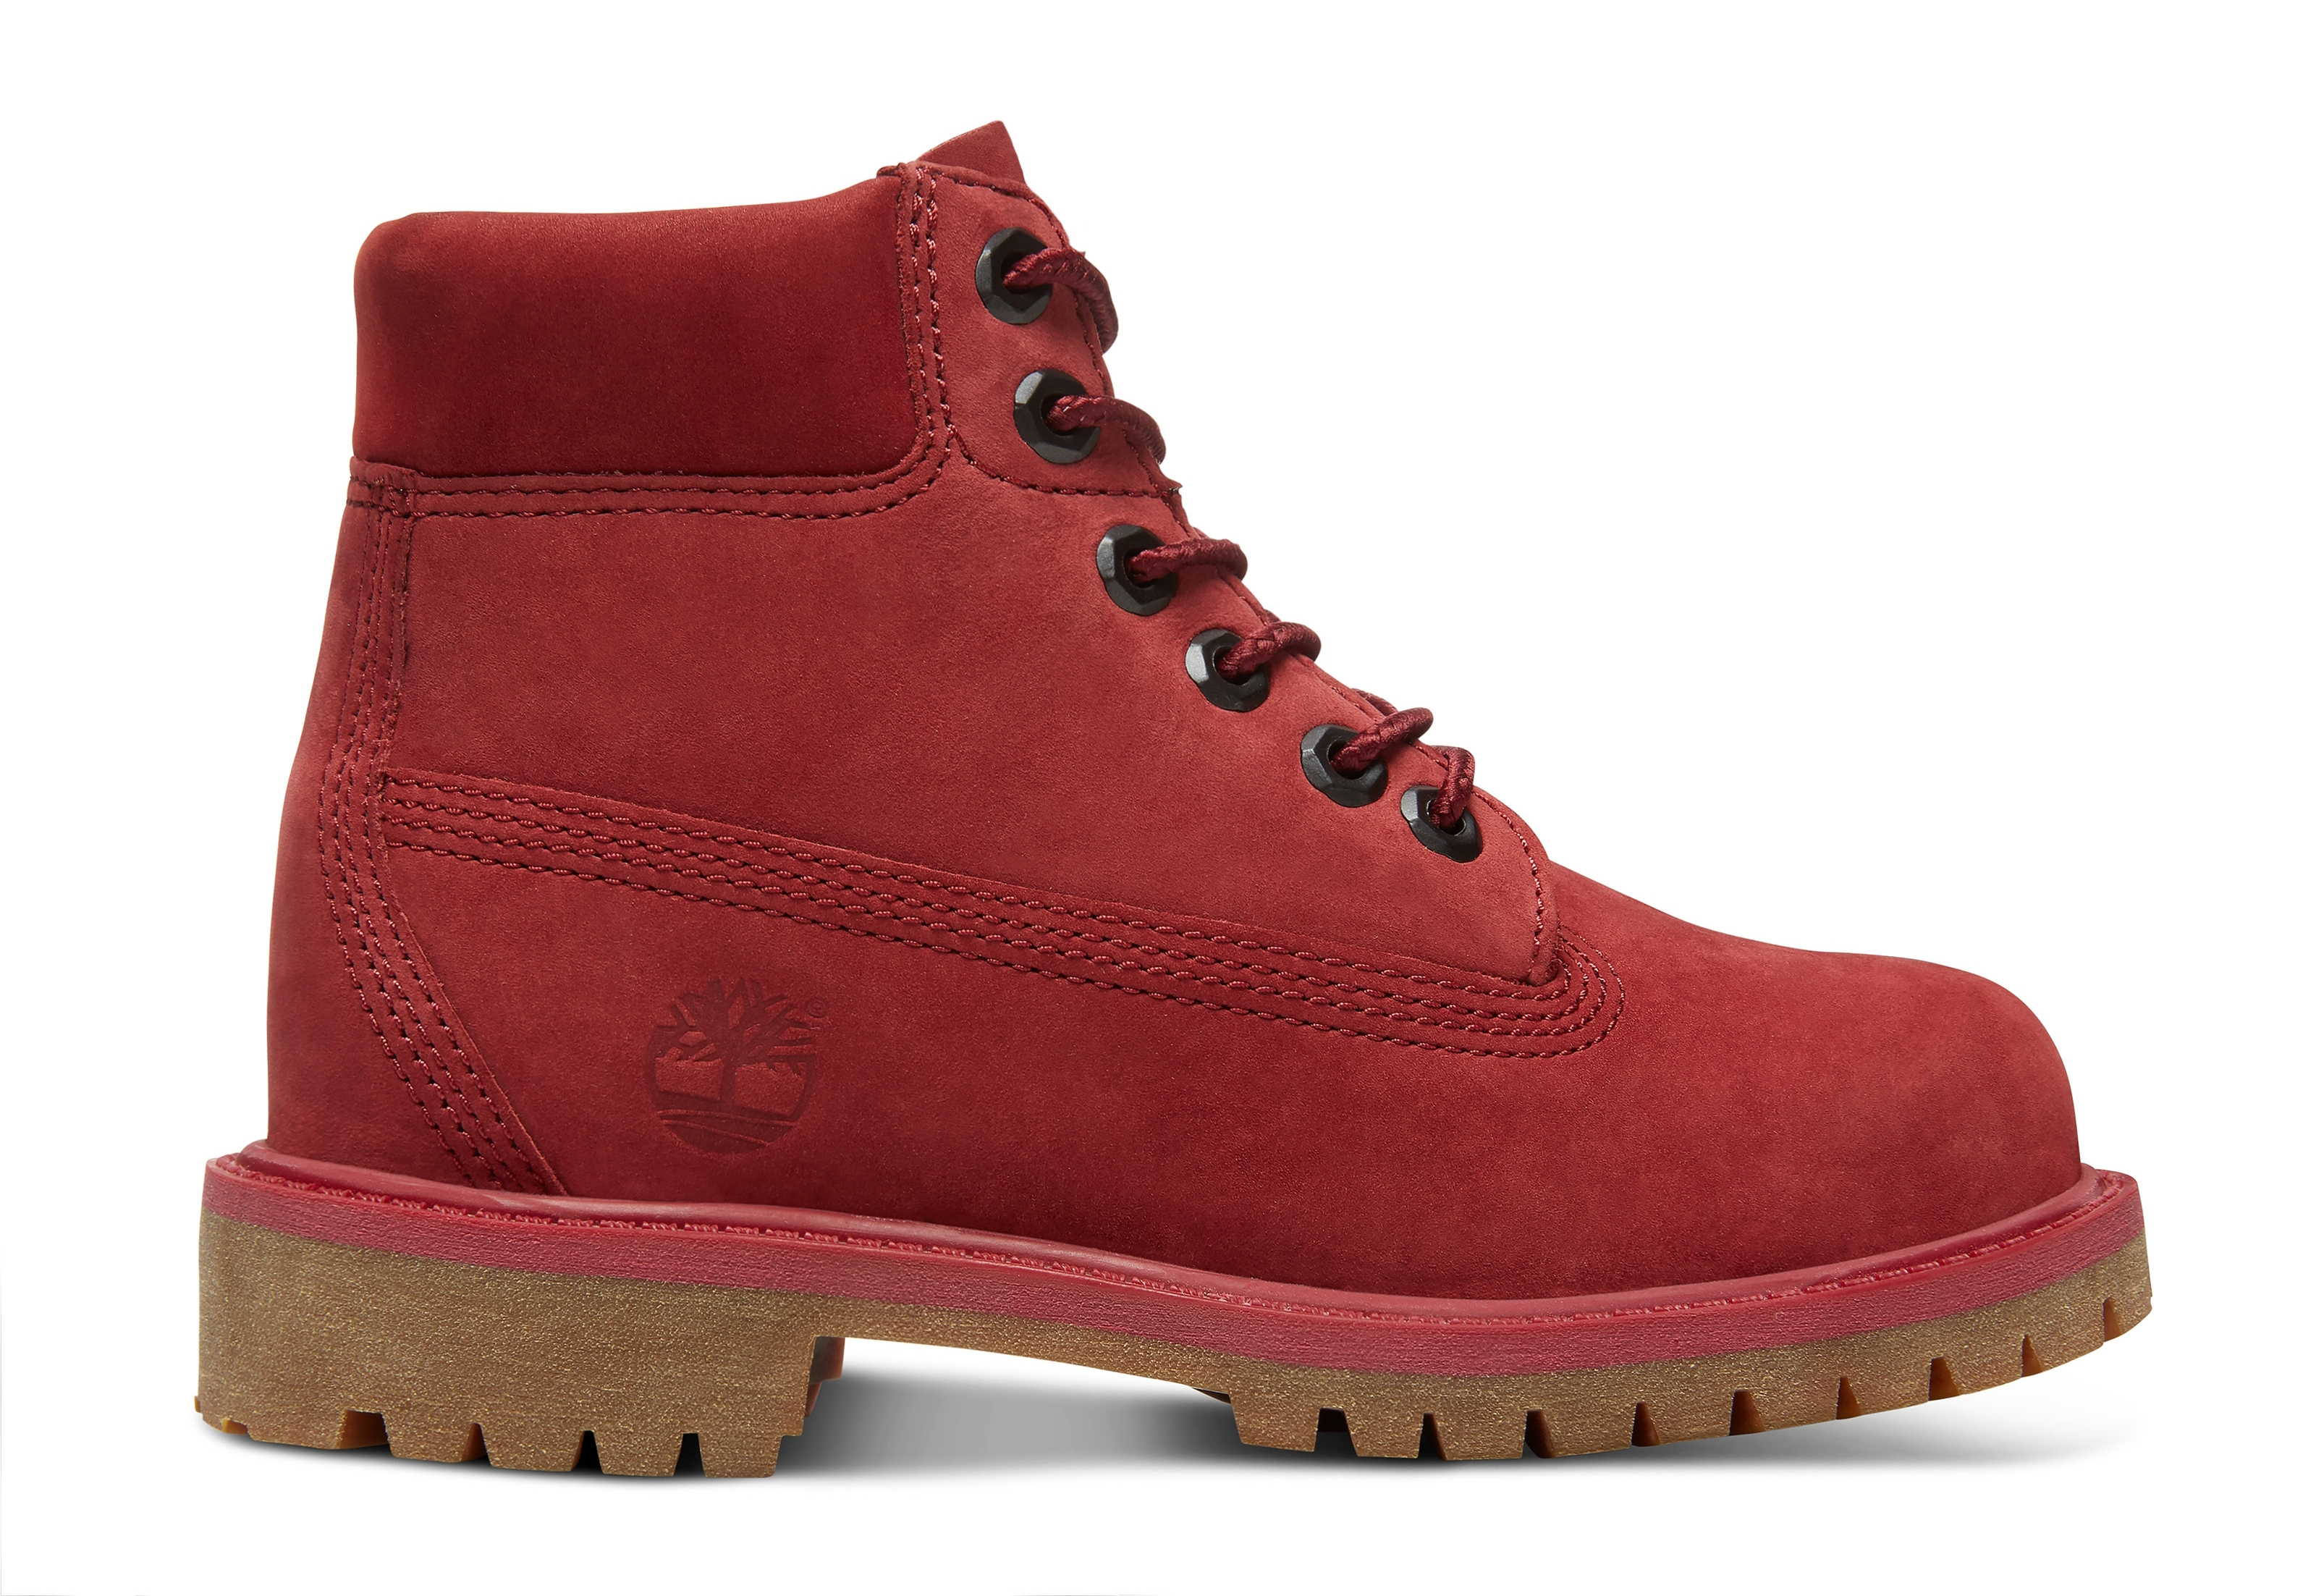 Wheat Chaussures Toddle New Timberland Tracks Precision ALq3Rj45